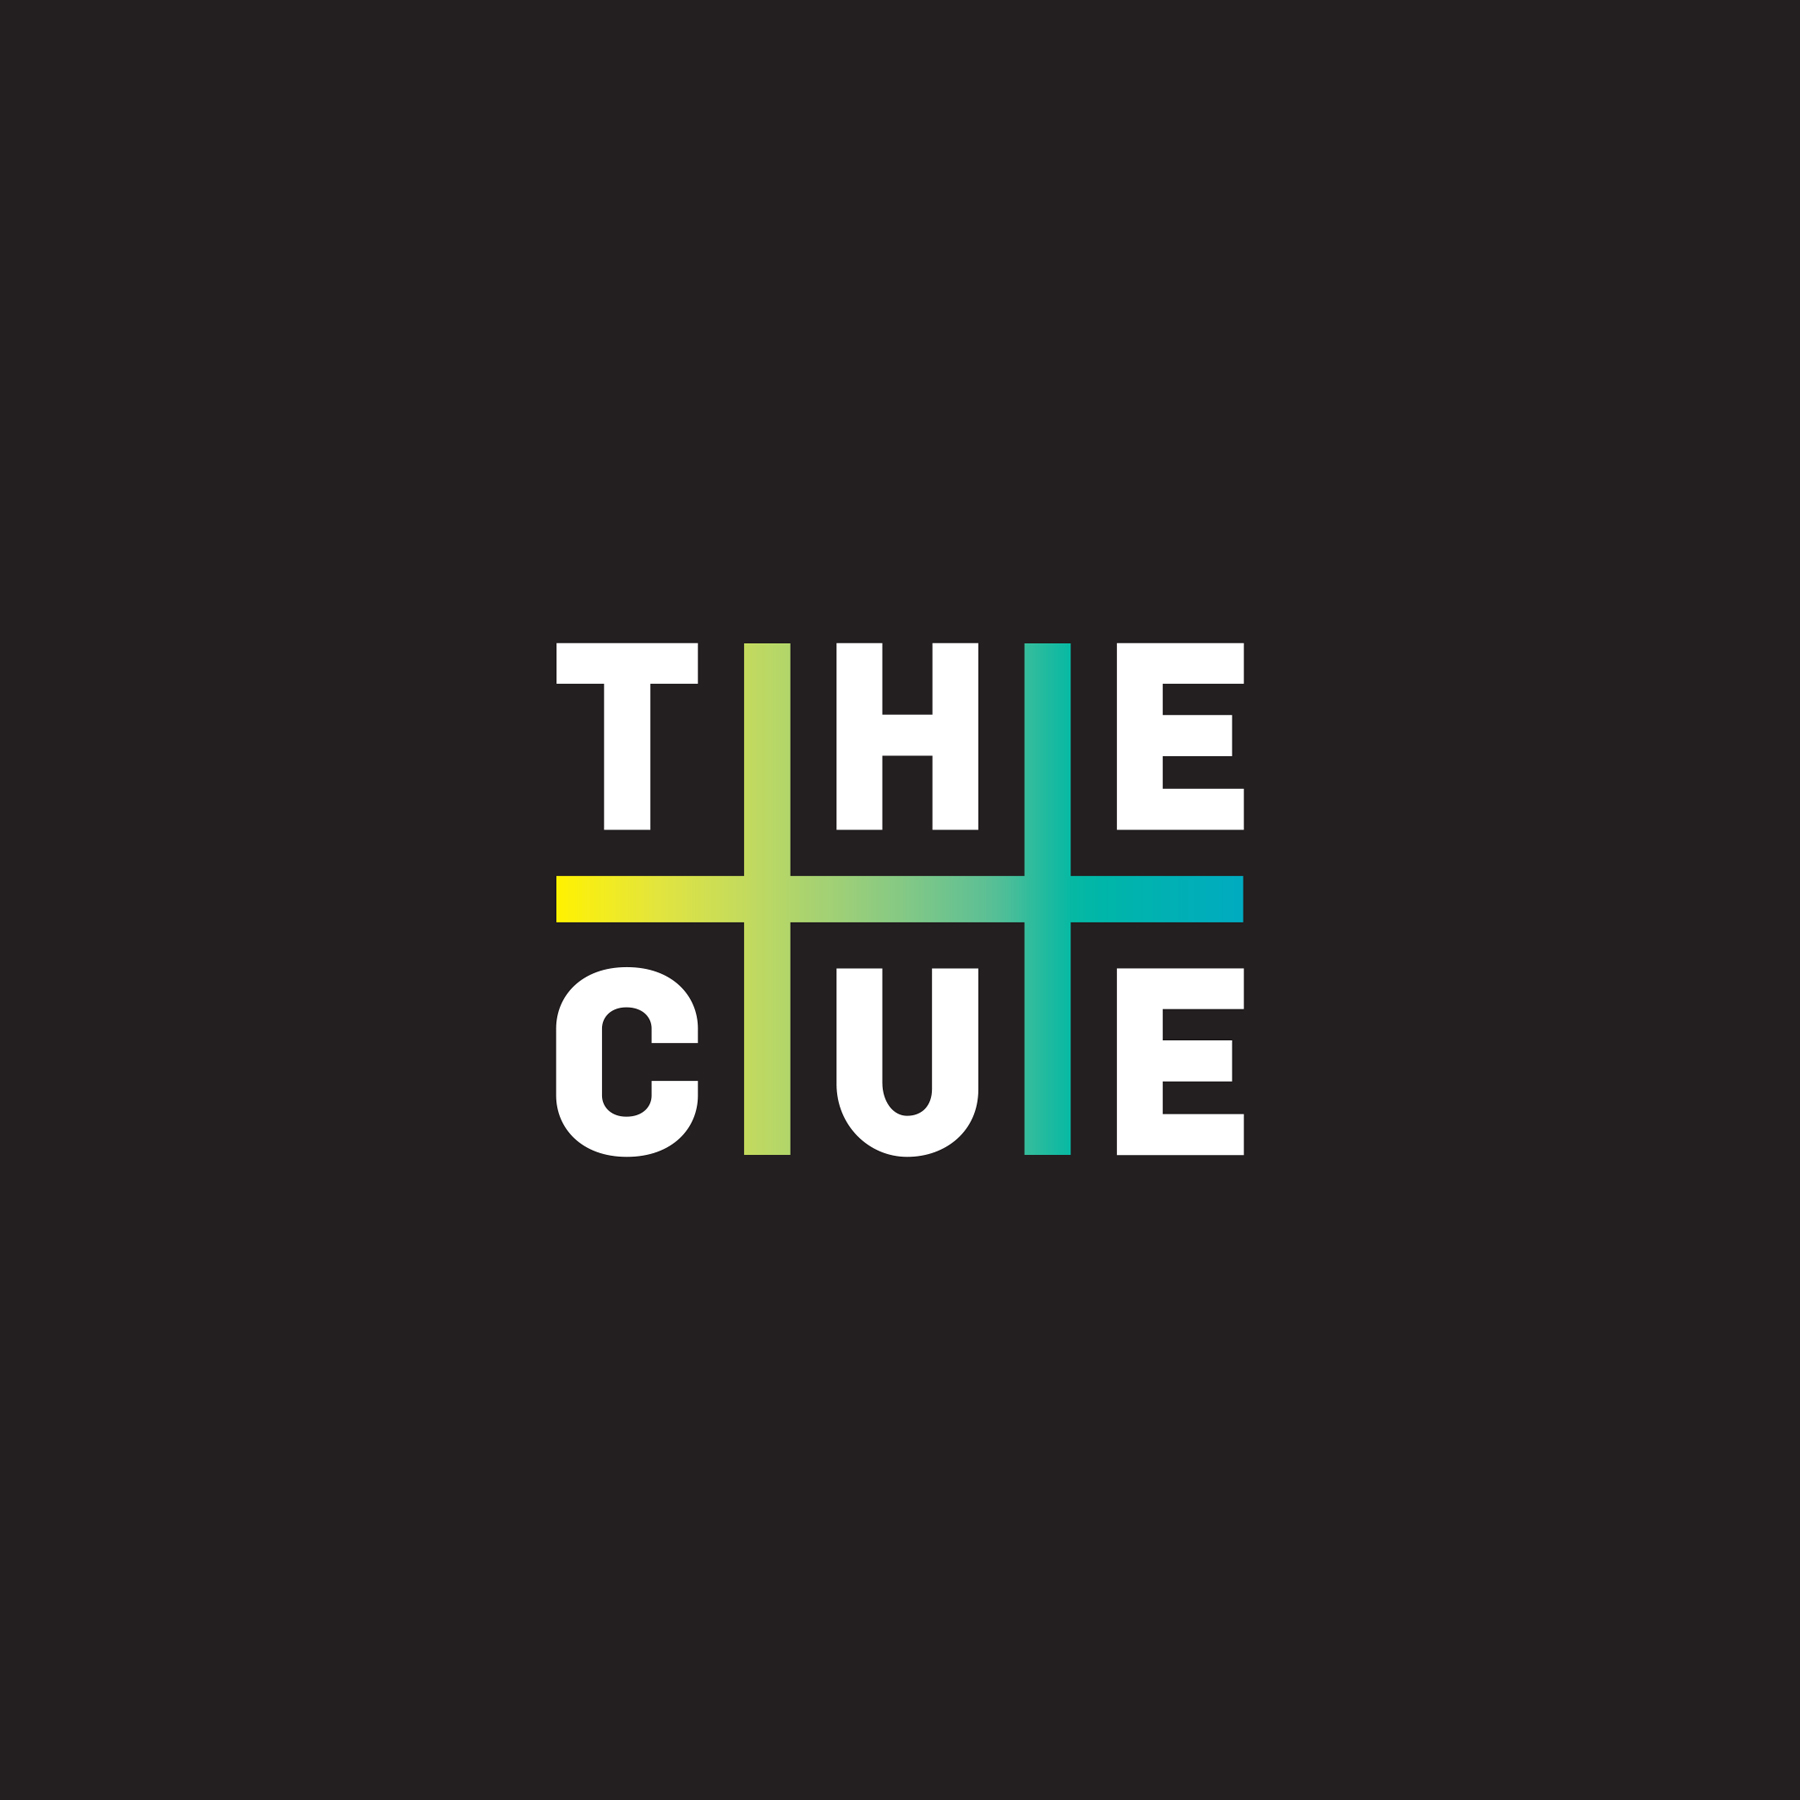 THE CUE